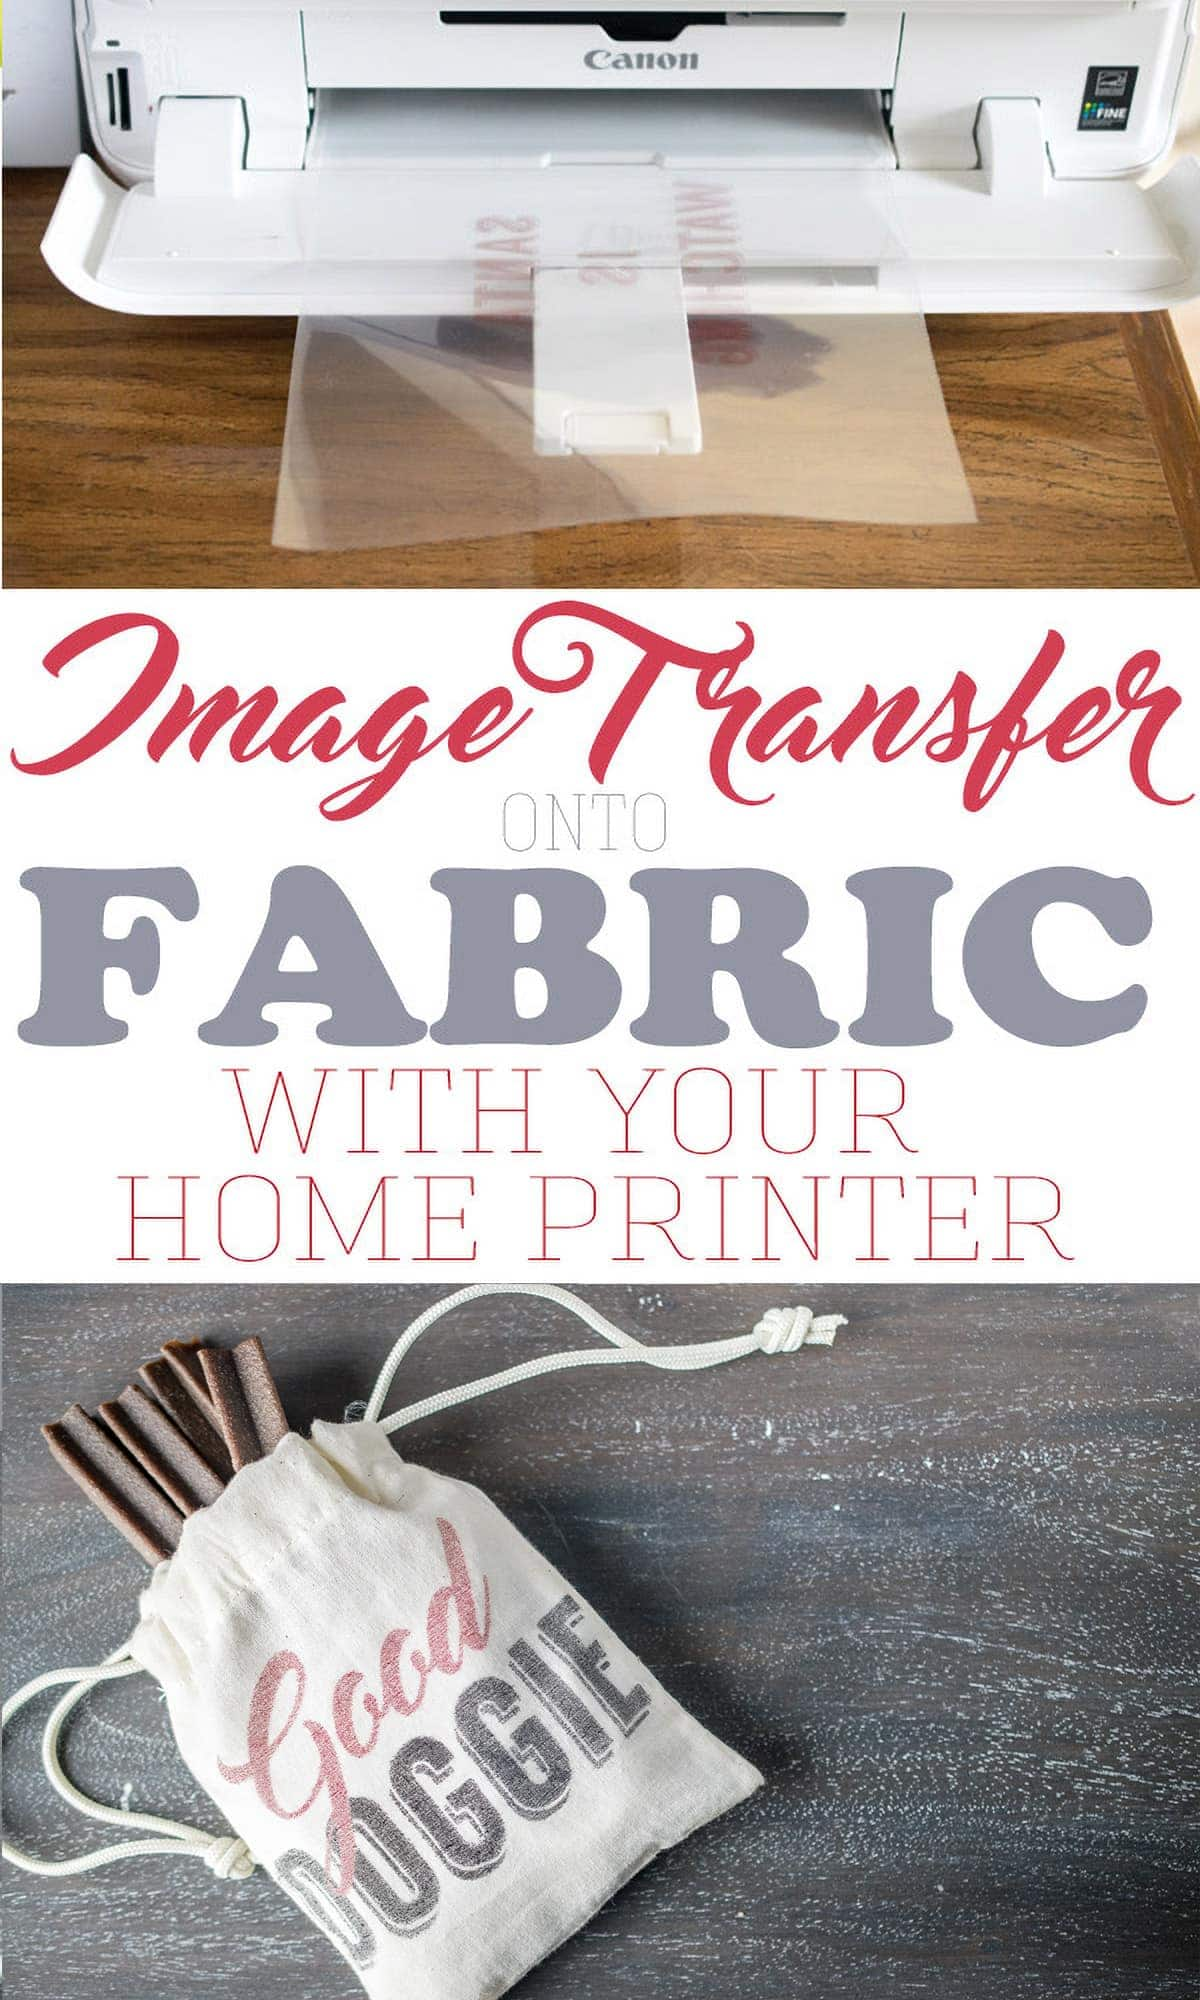 Transferring an image onto fabric with an inkjet printer shown with final product with image in place.